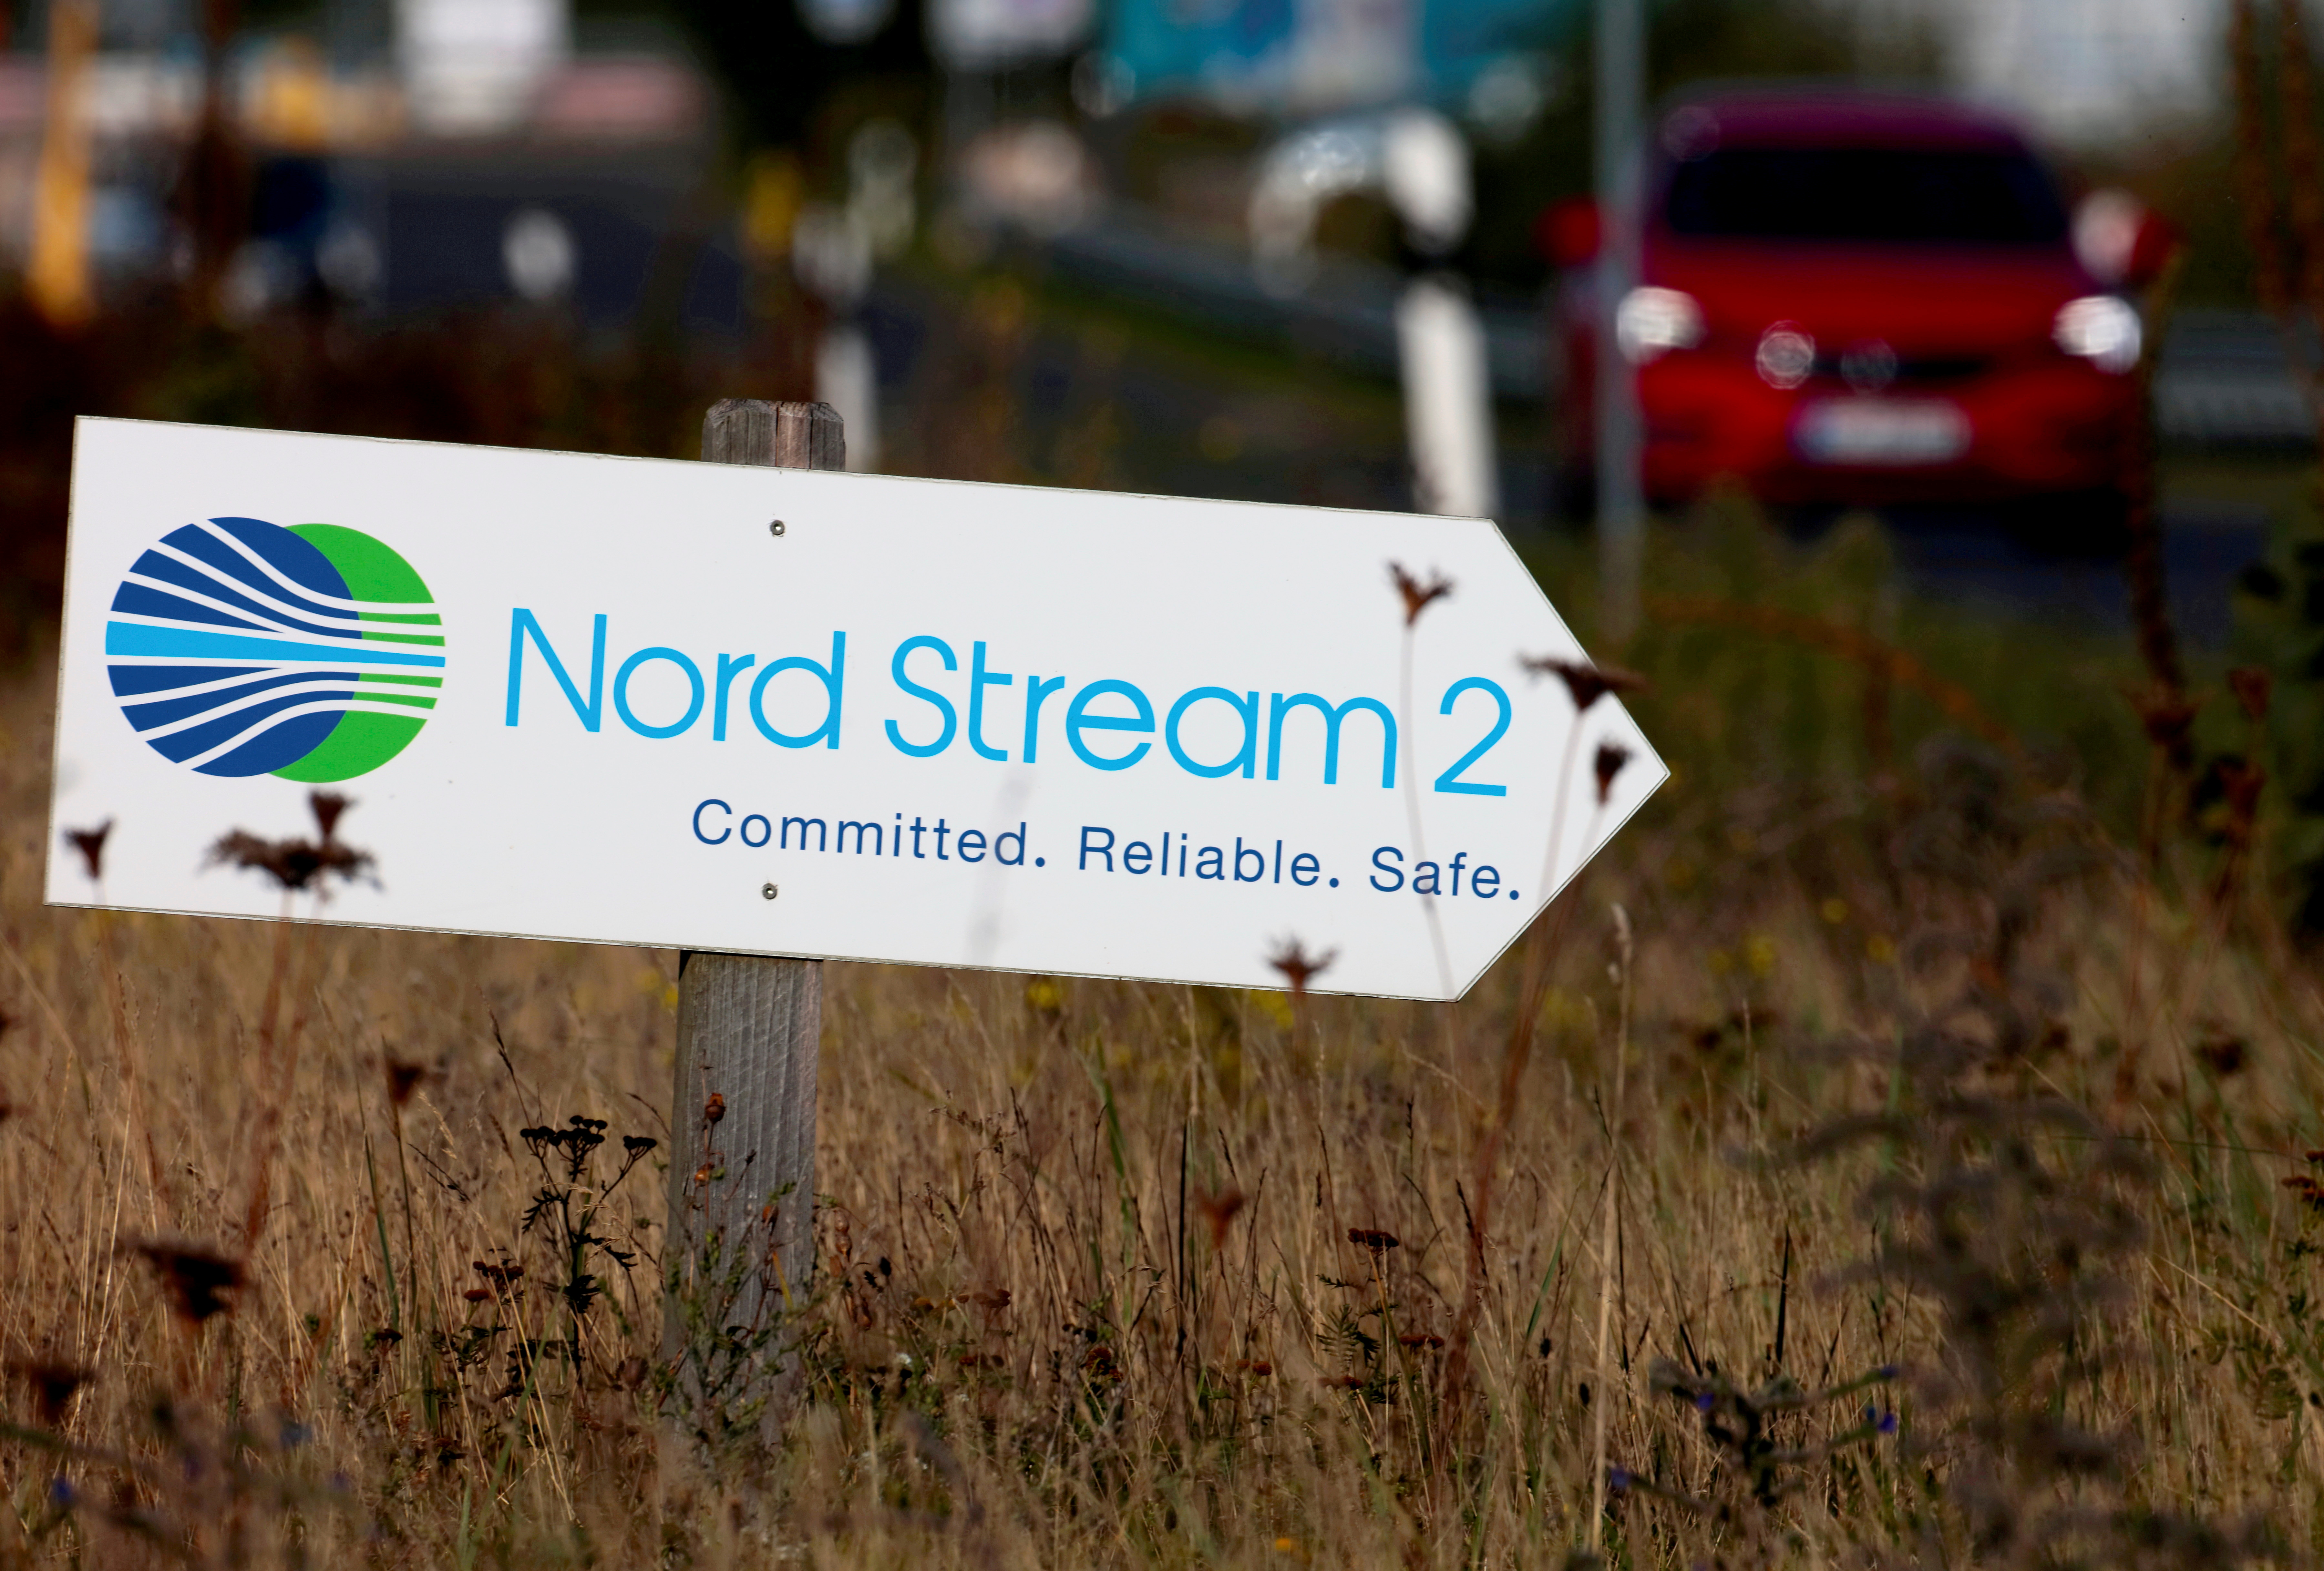 A road sign directs traffic towards the Nord Stream 2 gas line landfall facility entrance in Lubmin, Germany, September 10, 2020.   REUTERS/Hannibal Hanschke/File Photo